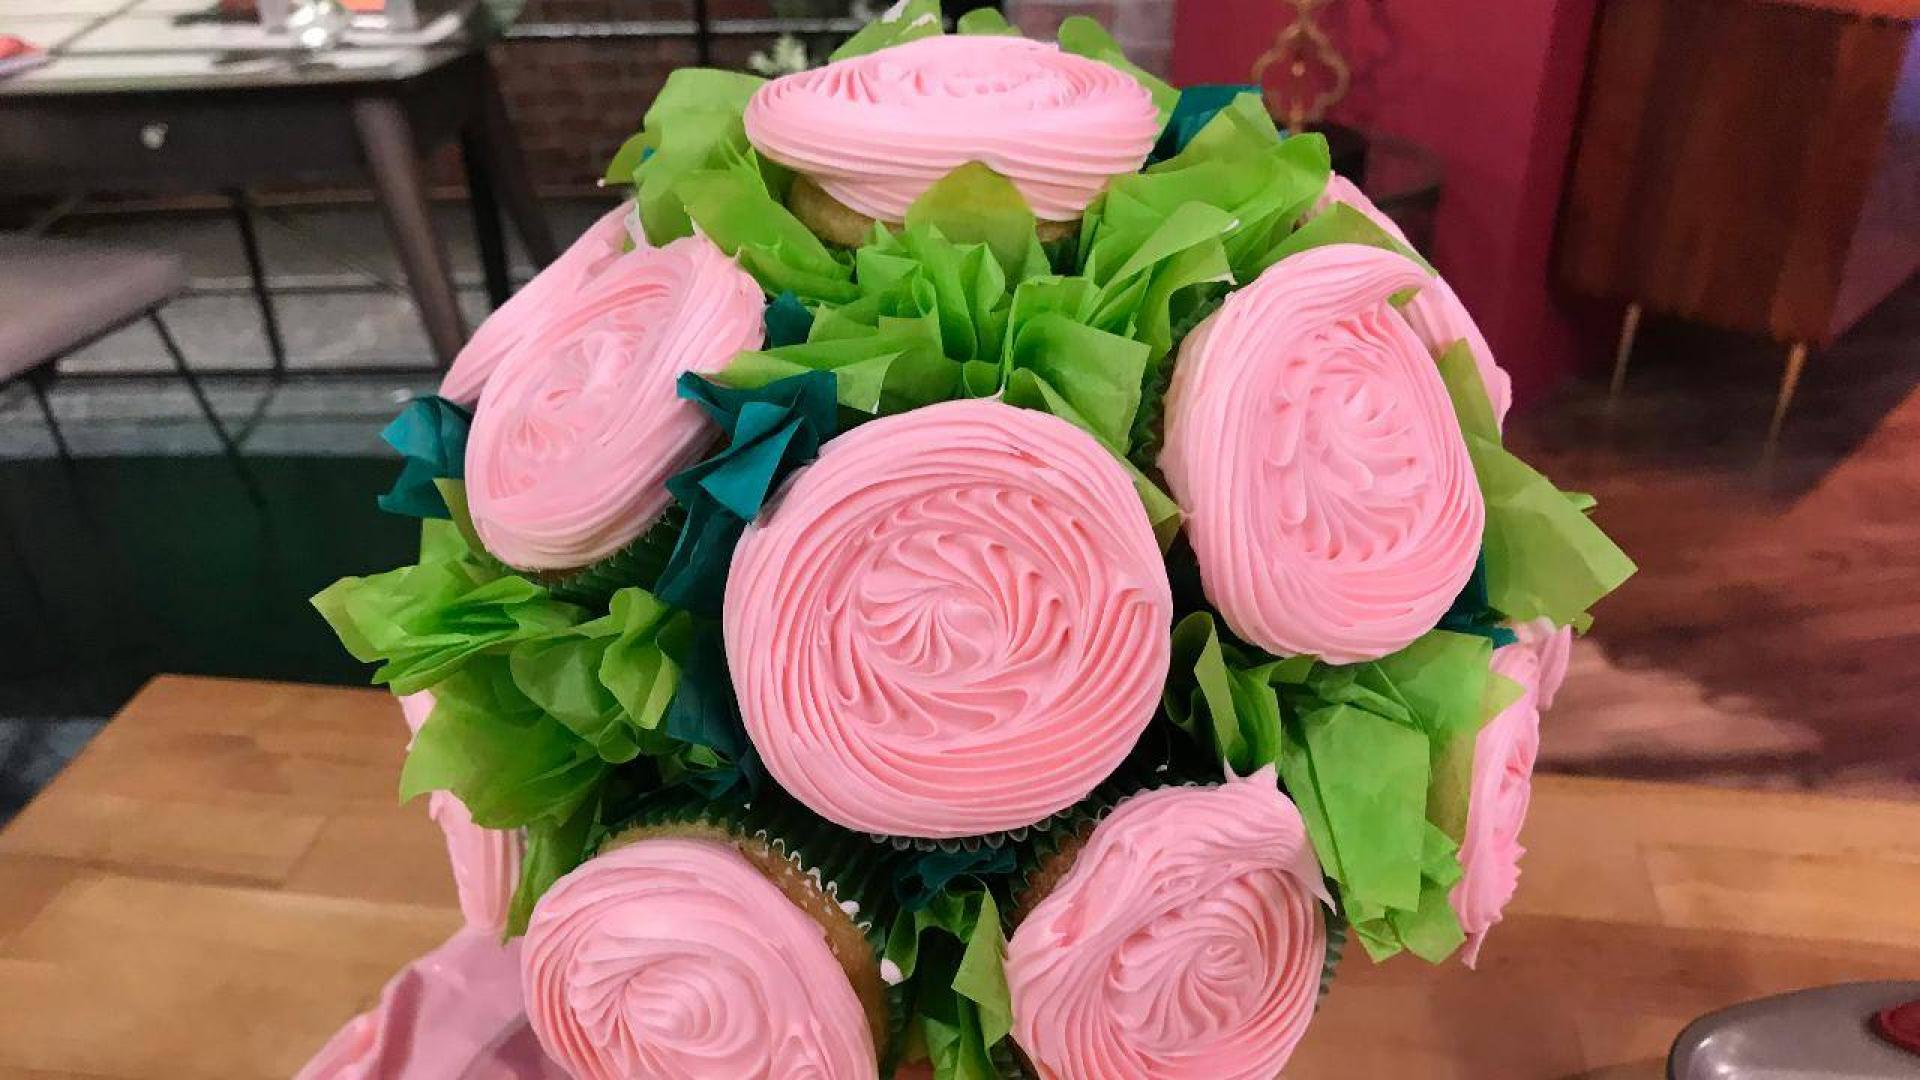 You know whats better than flowers a cupcake bouquet heres how you know whats better than flowers a cupcake bouquet heres how to make one rachael ray show izmirmasajfo